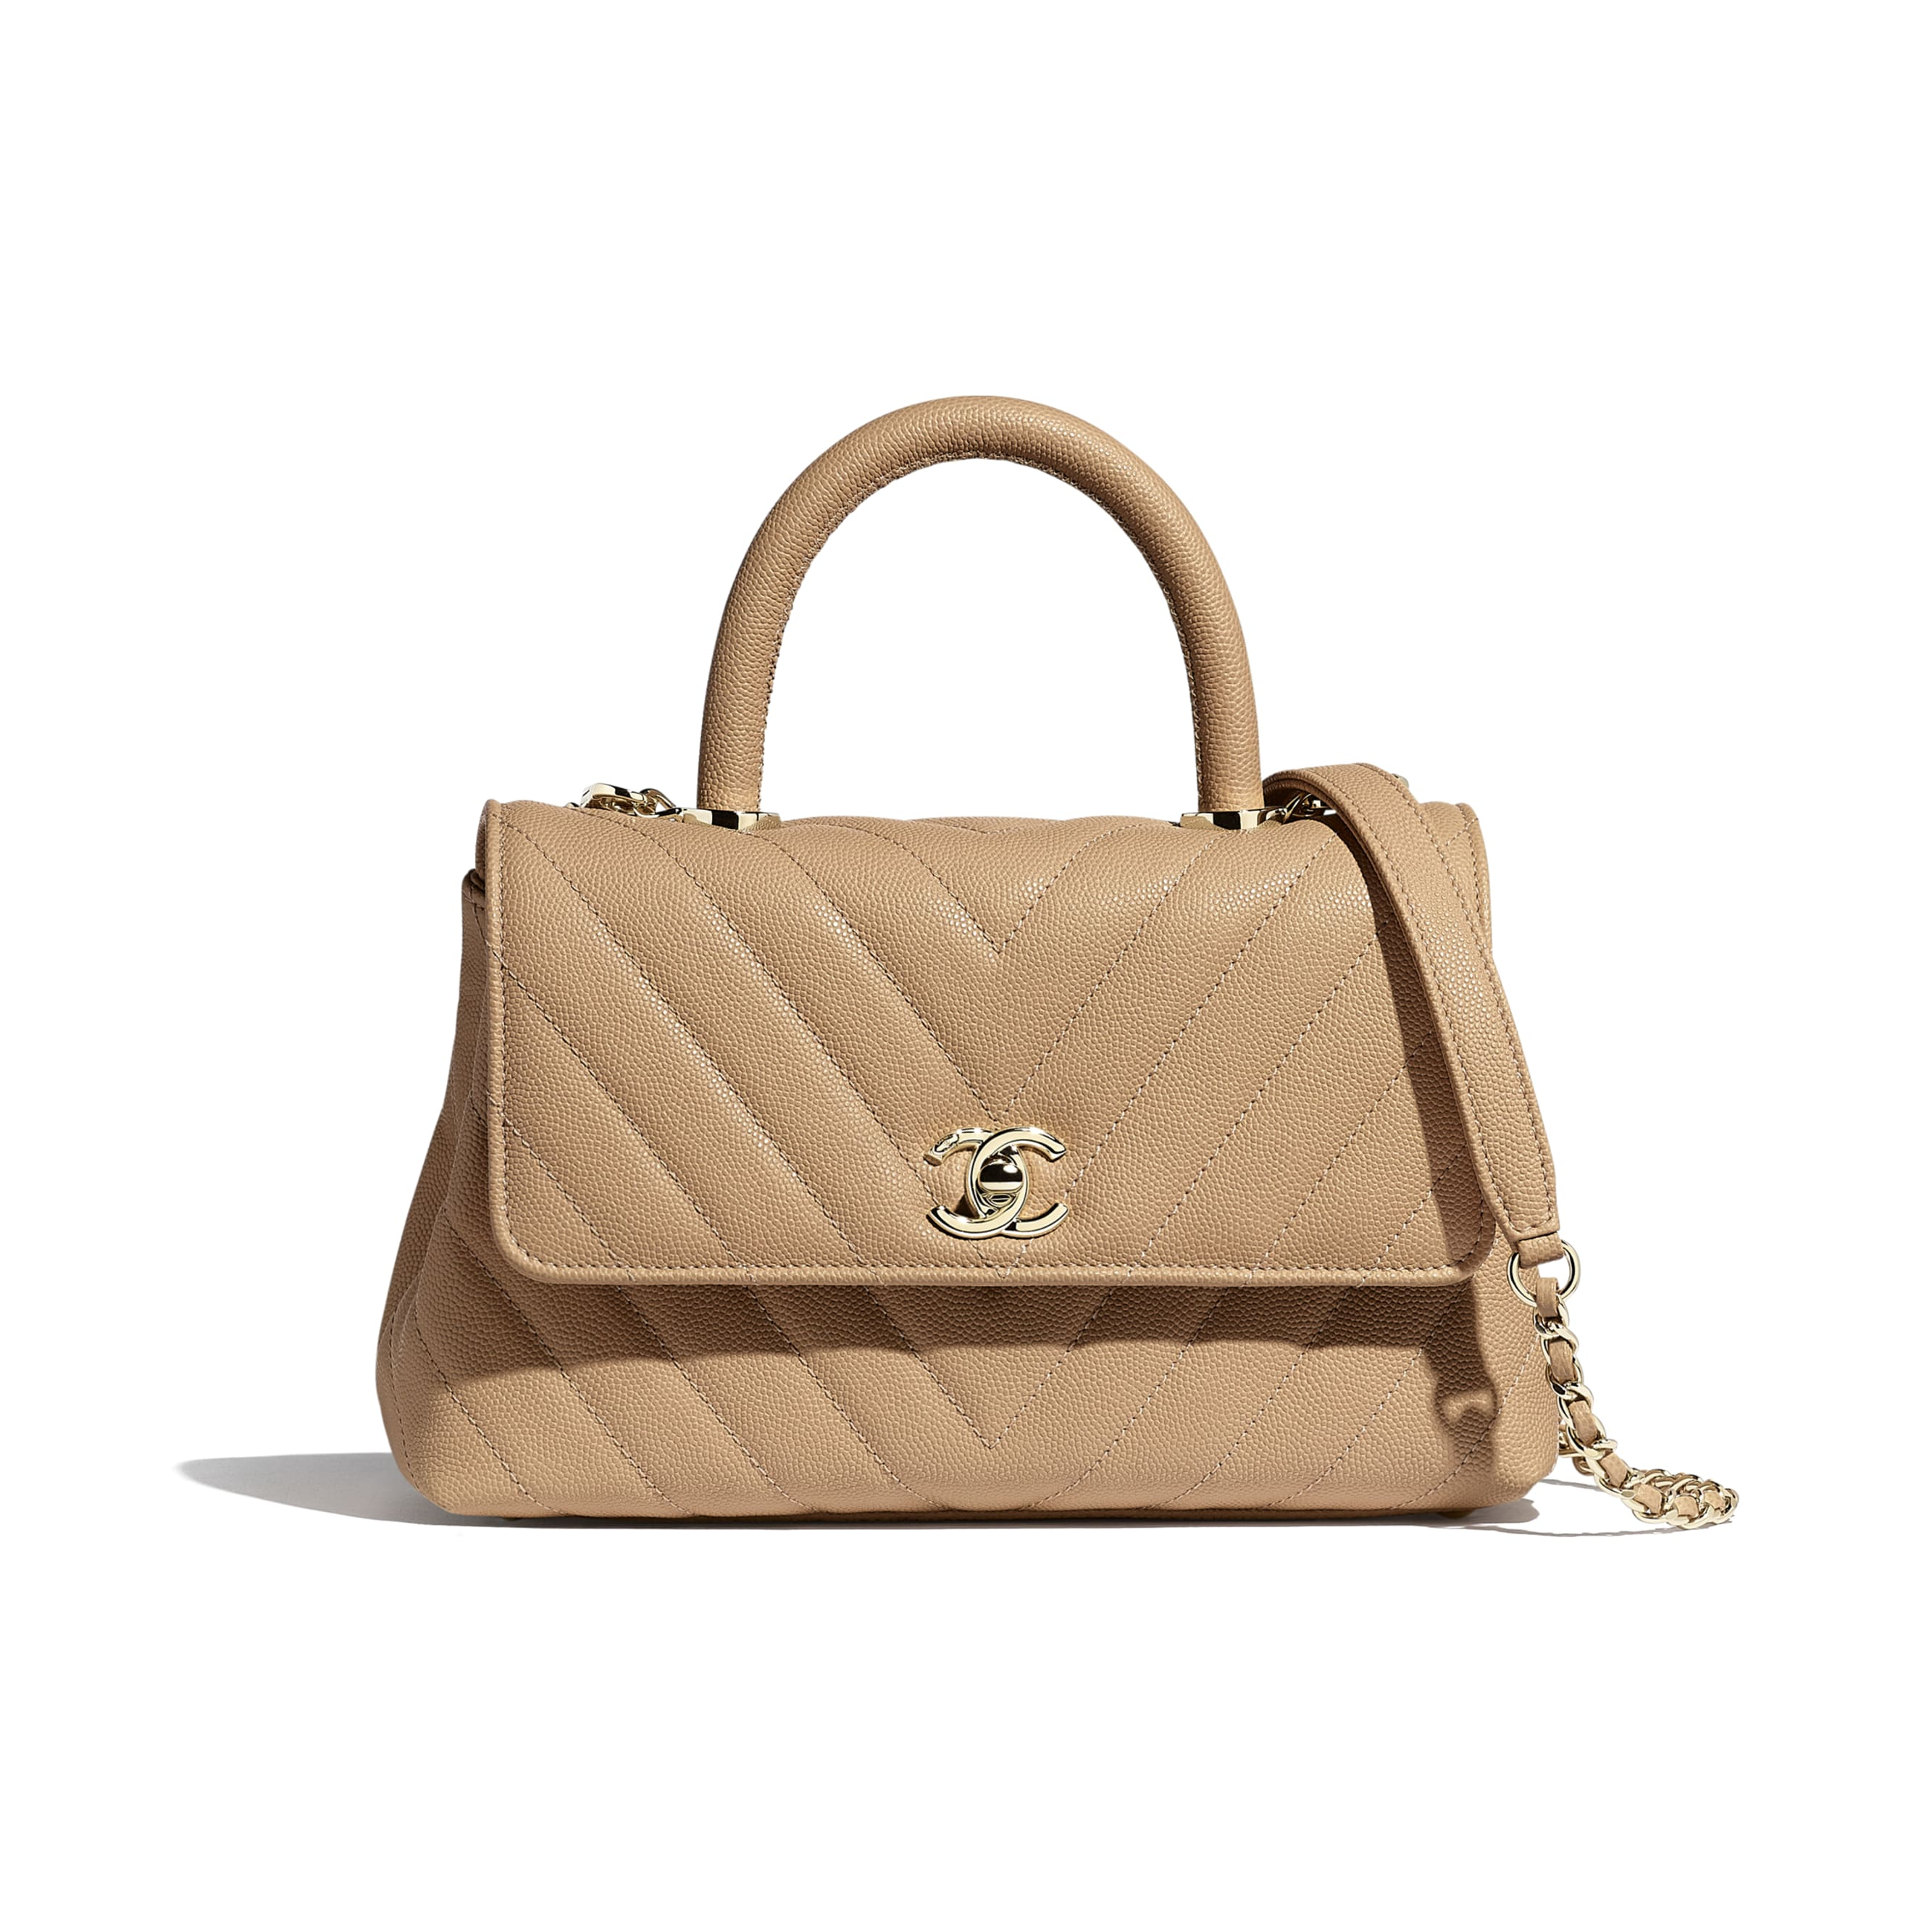 Small Flap Bag with Top Handle - Beige - Grained Calfskin & Gold-Tone Metal - CHANEL - Default view - see standard sized version